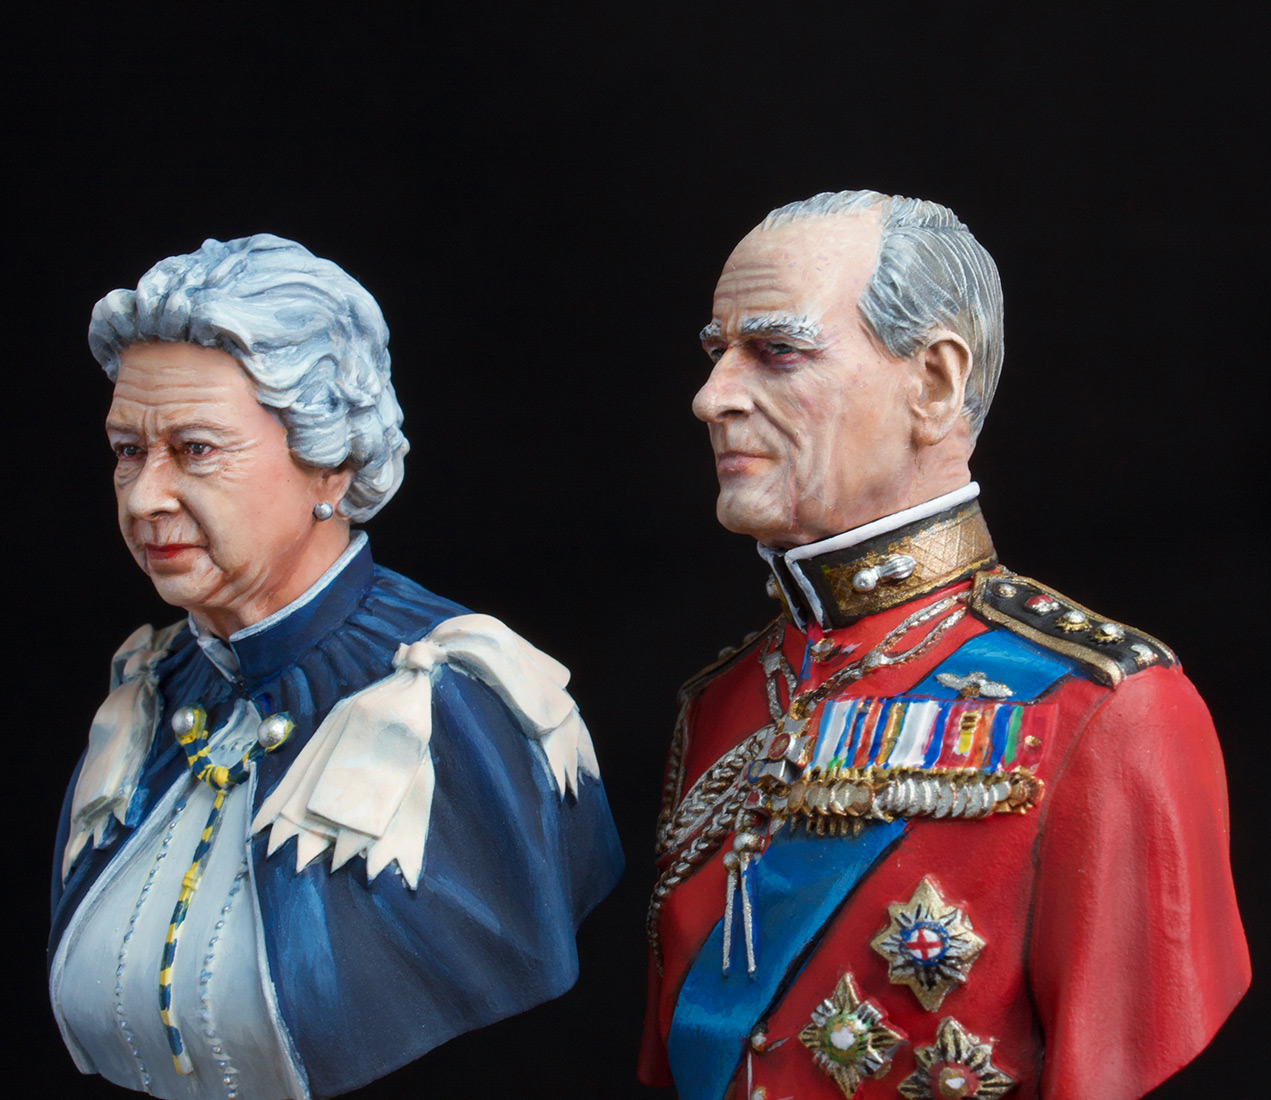 Figures: Elizabeth II and Prince Philip, photo #4